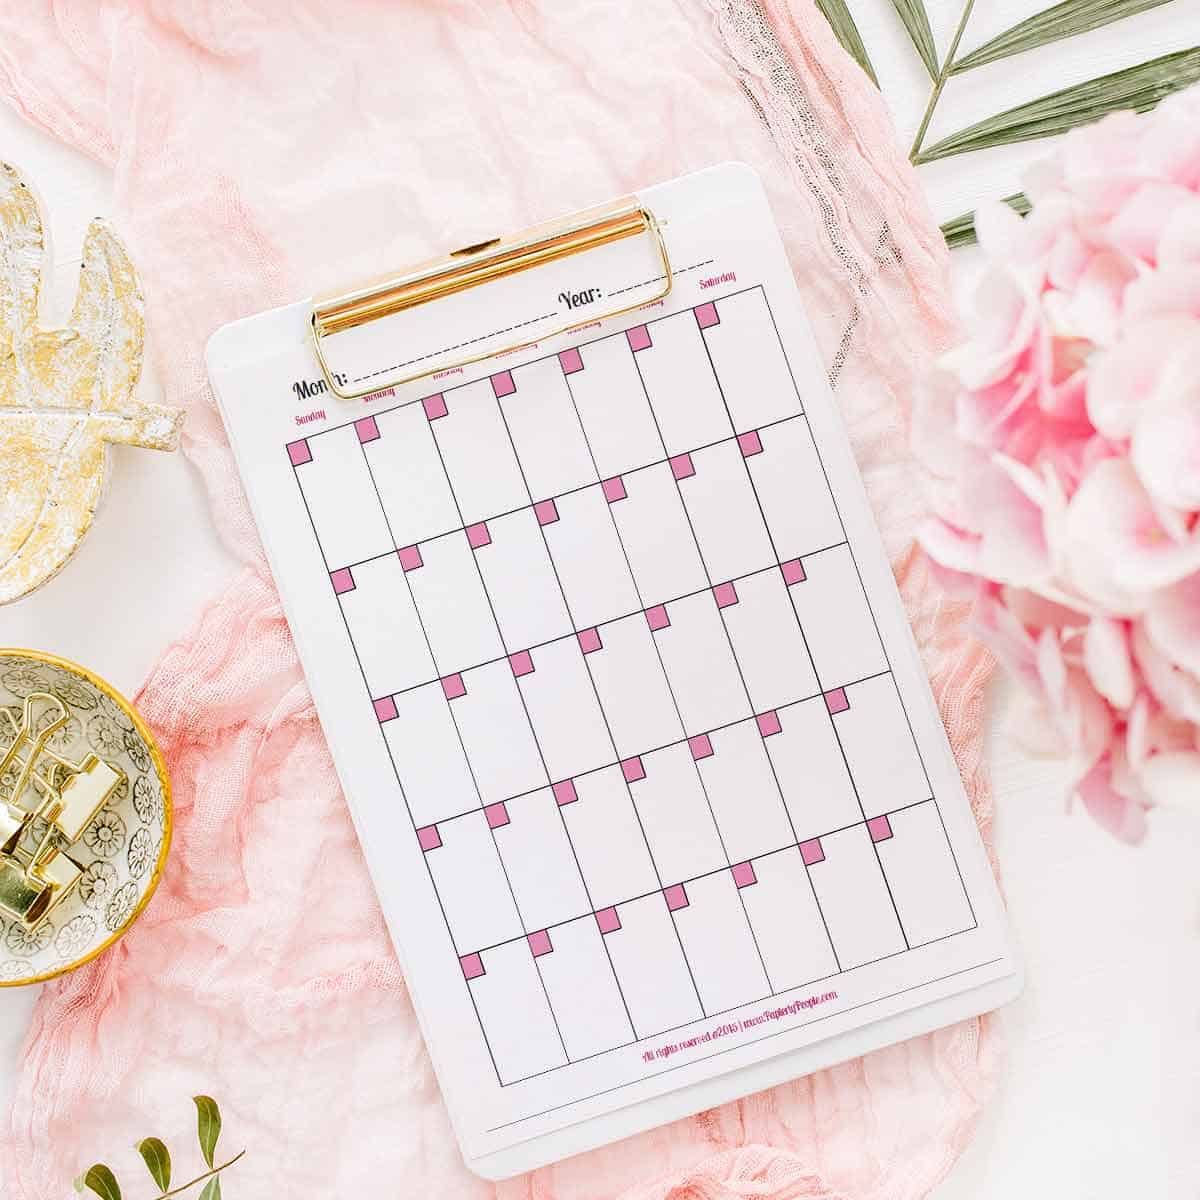 Monthly Calendar Page - Printable planner pages for Staples ARC Notebook or 3 Ring Binders.